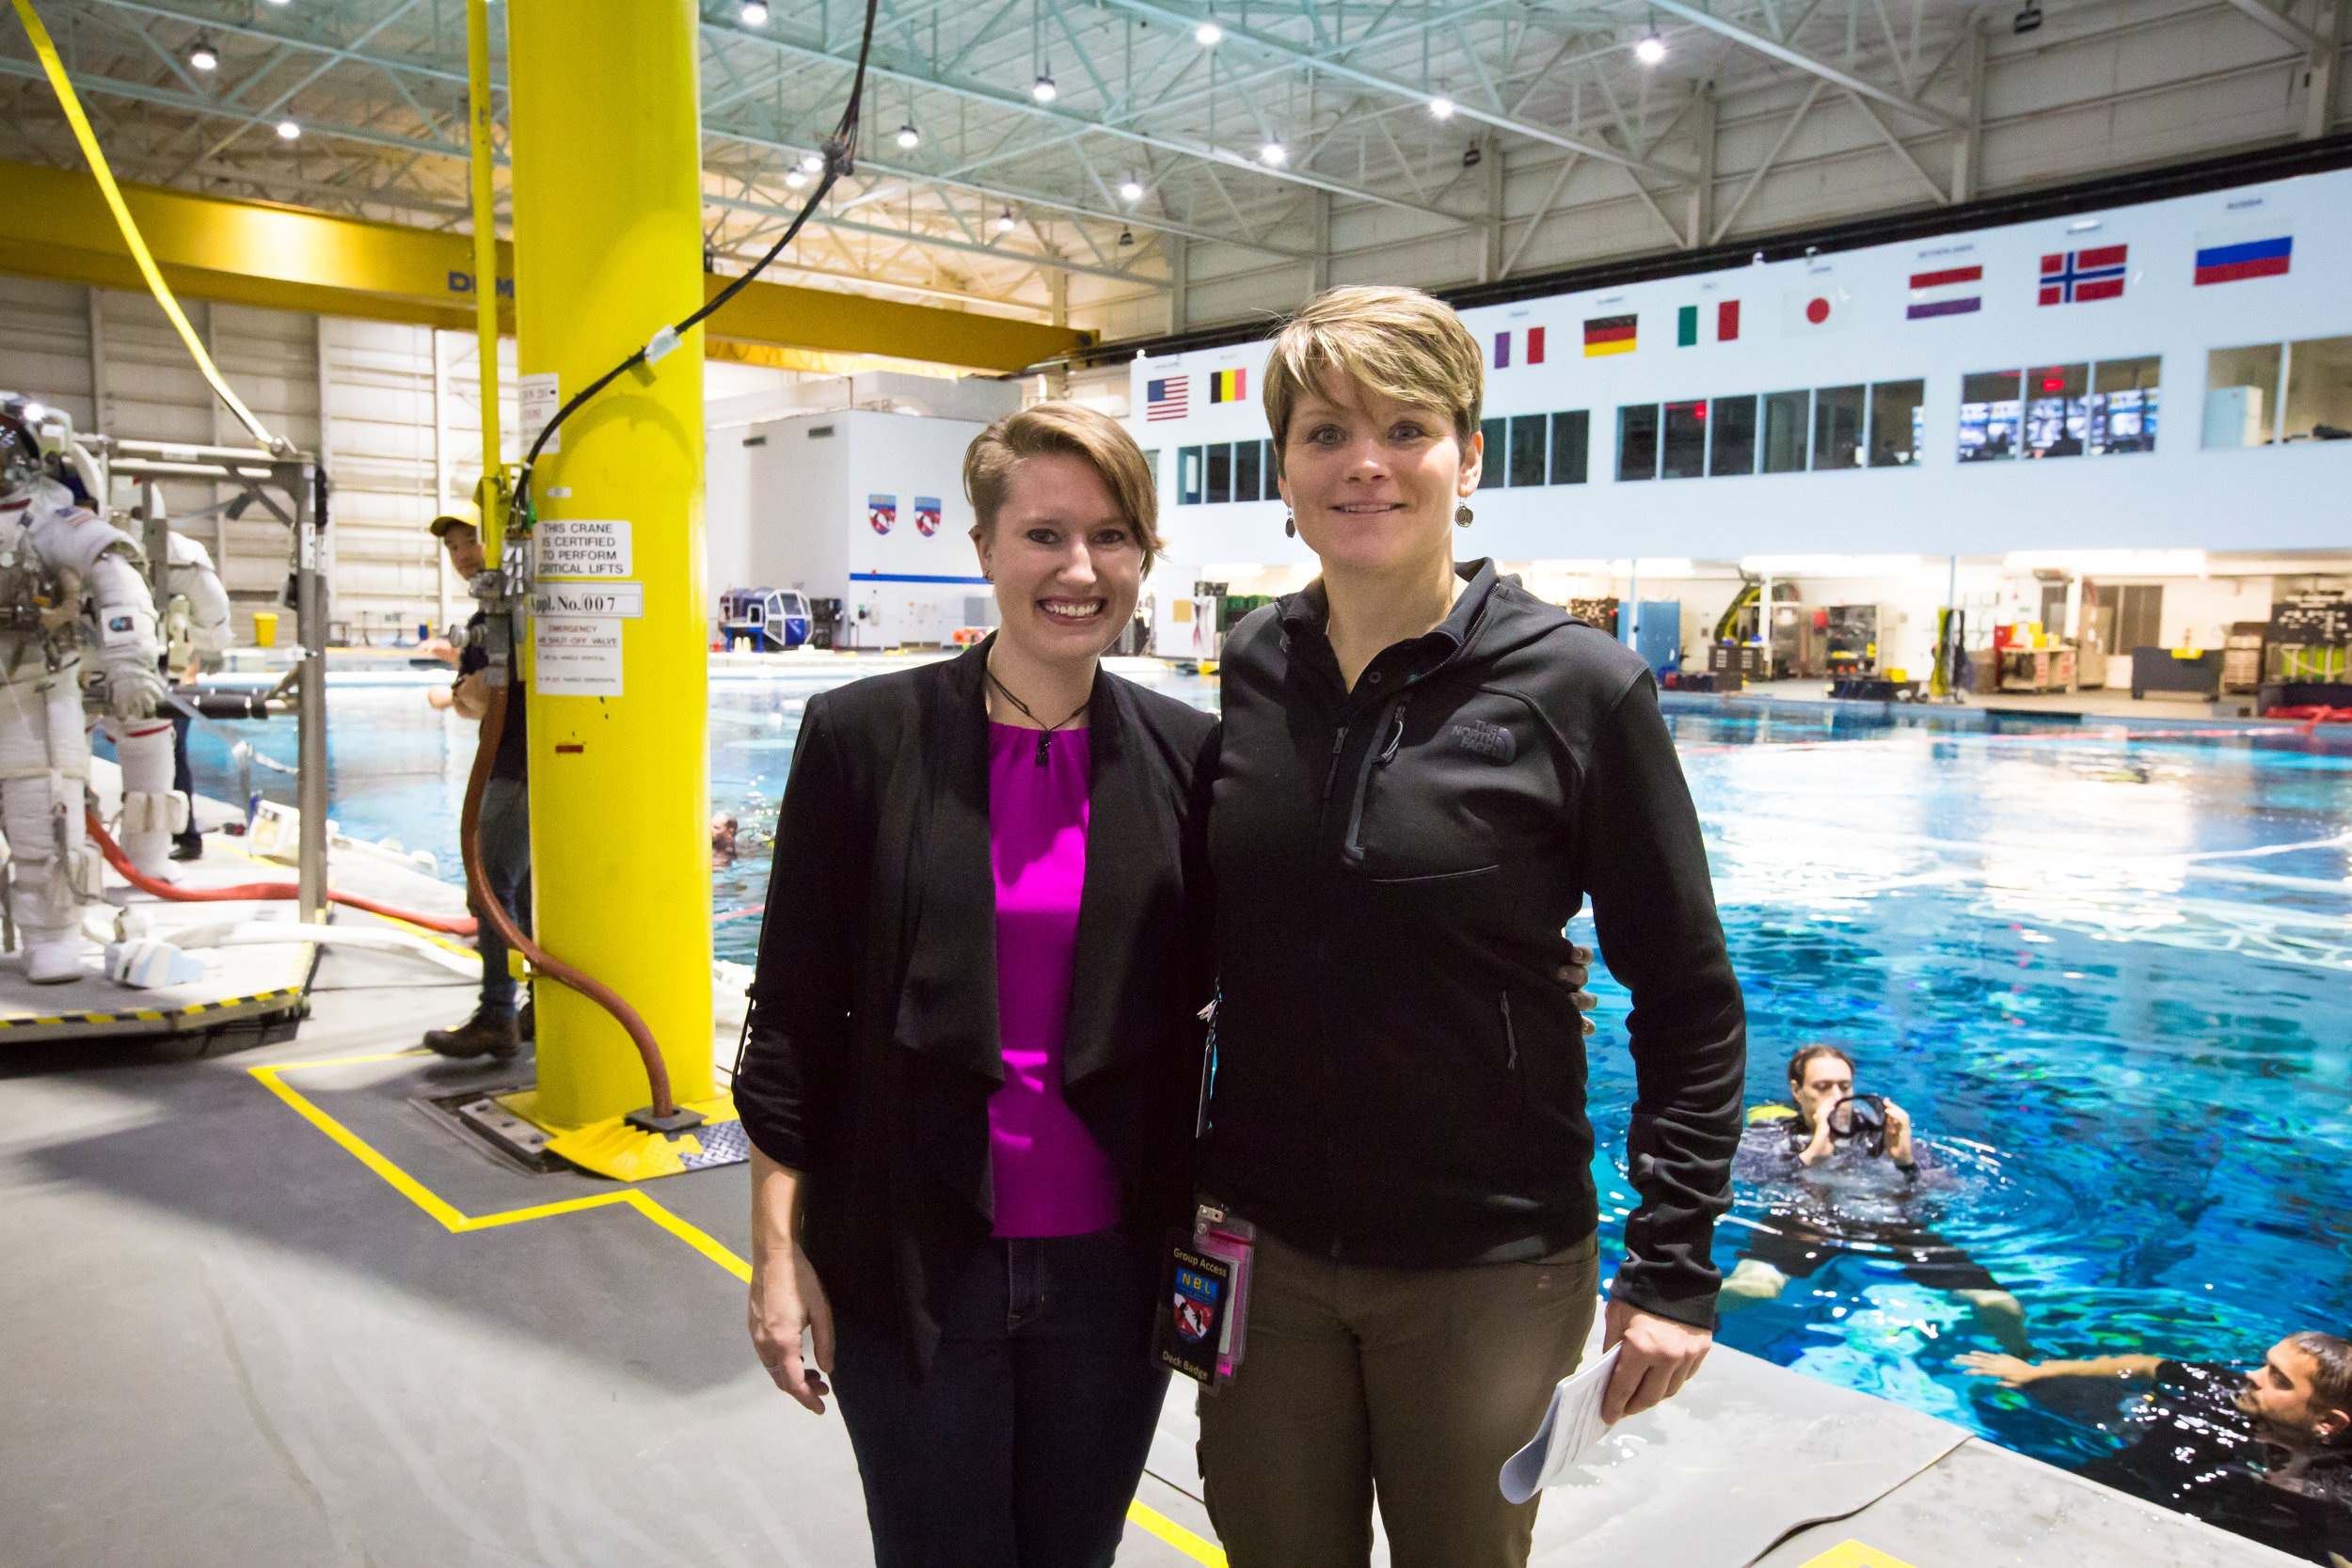 LSU Martian geologist researcher Nicki Button (left) with astronaut Anne McClain (right) at the NASA Neutral Buoyancy Lab. Photo by Paige Jarreau.